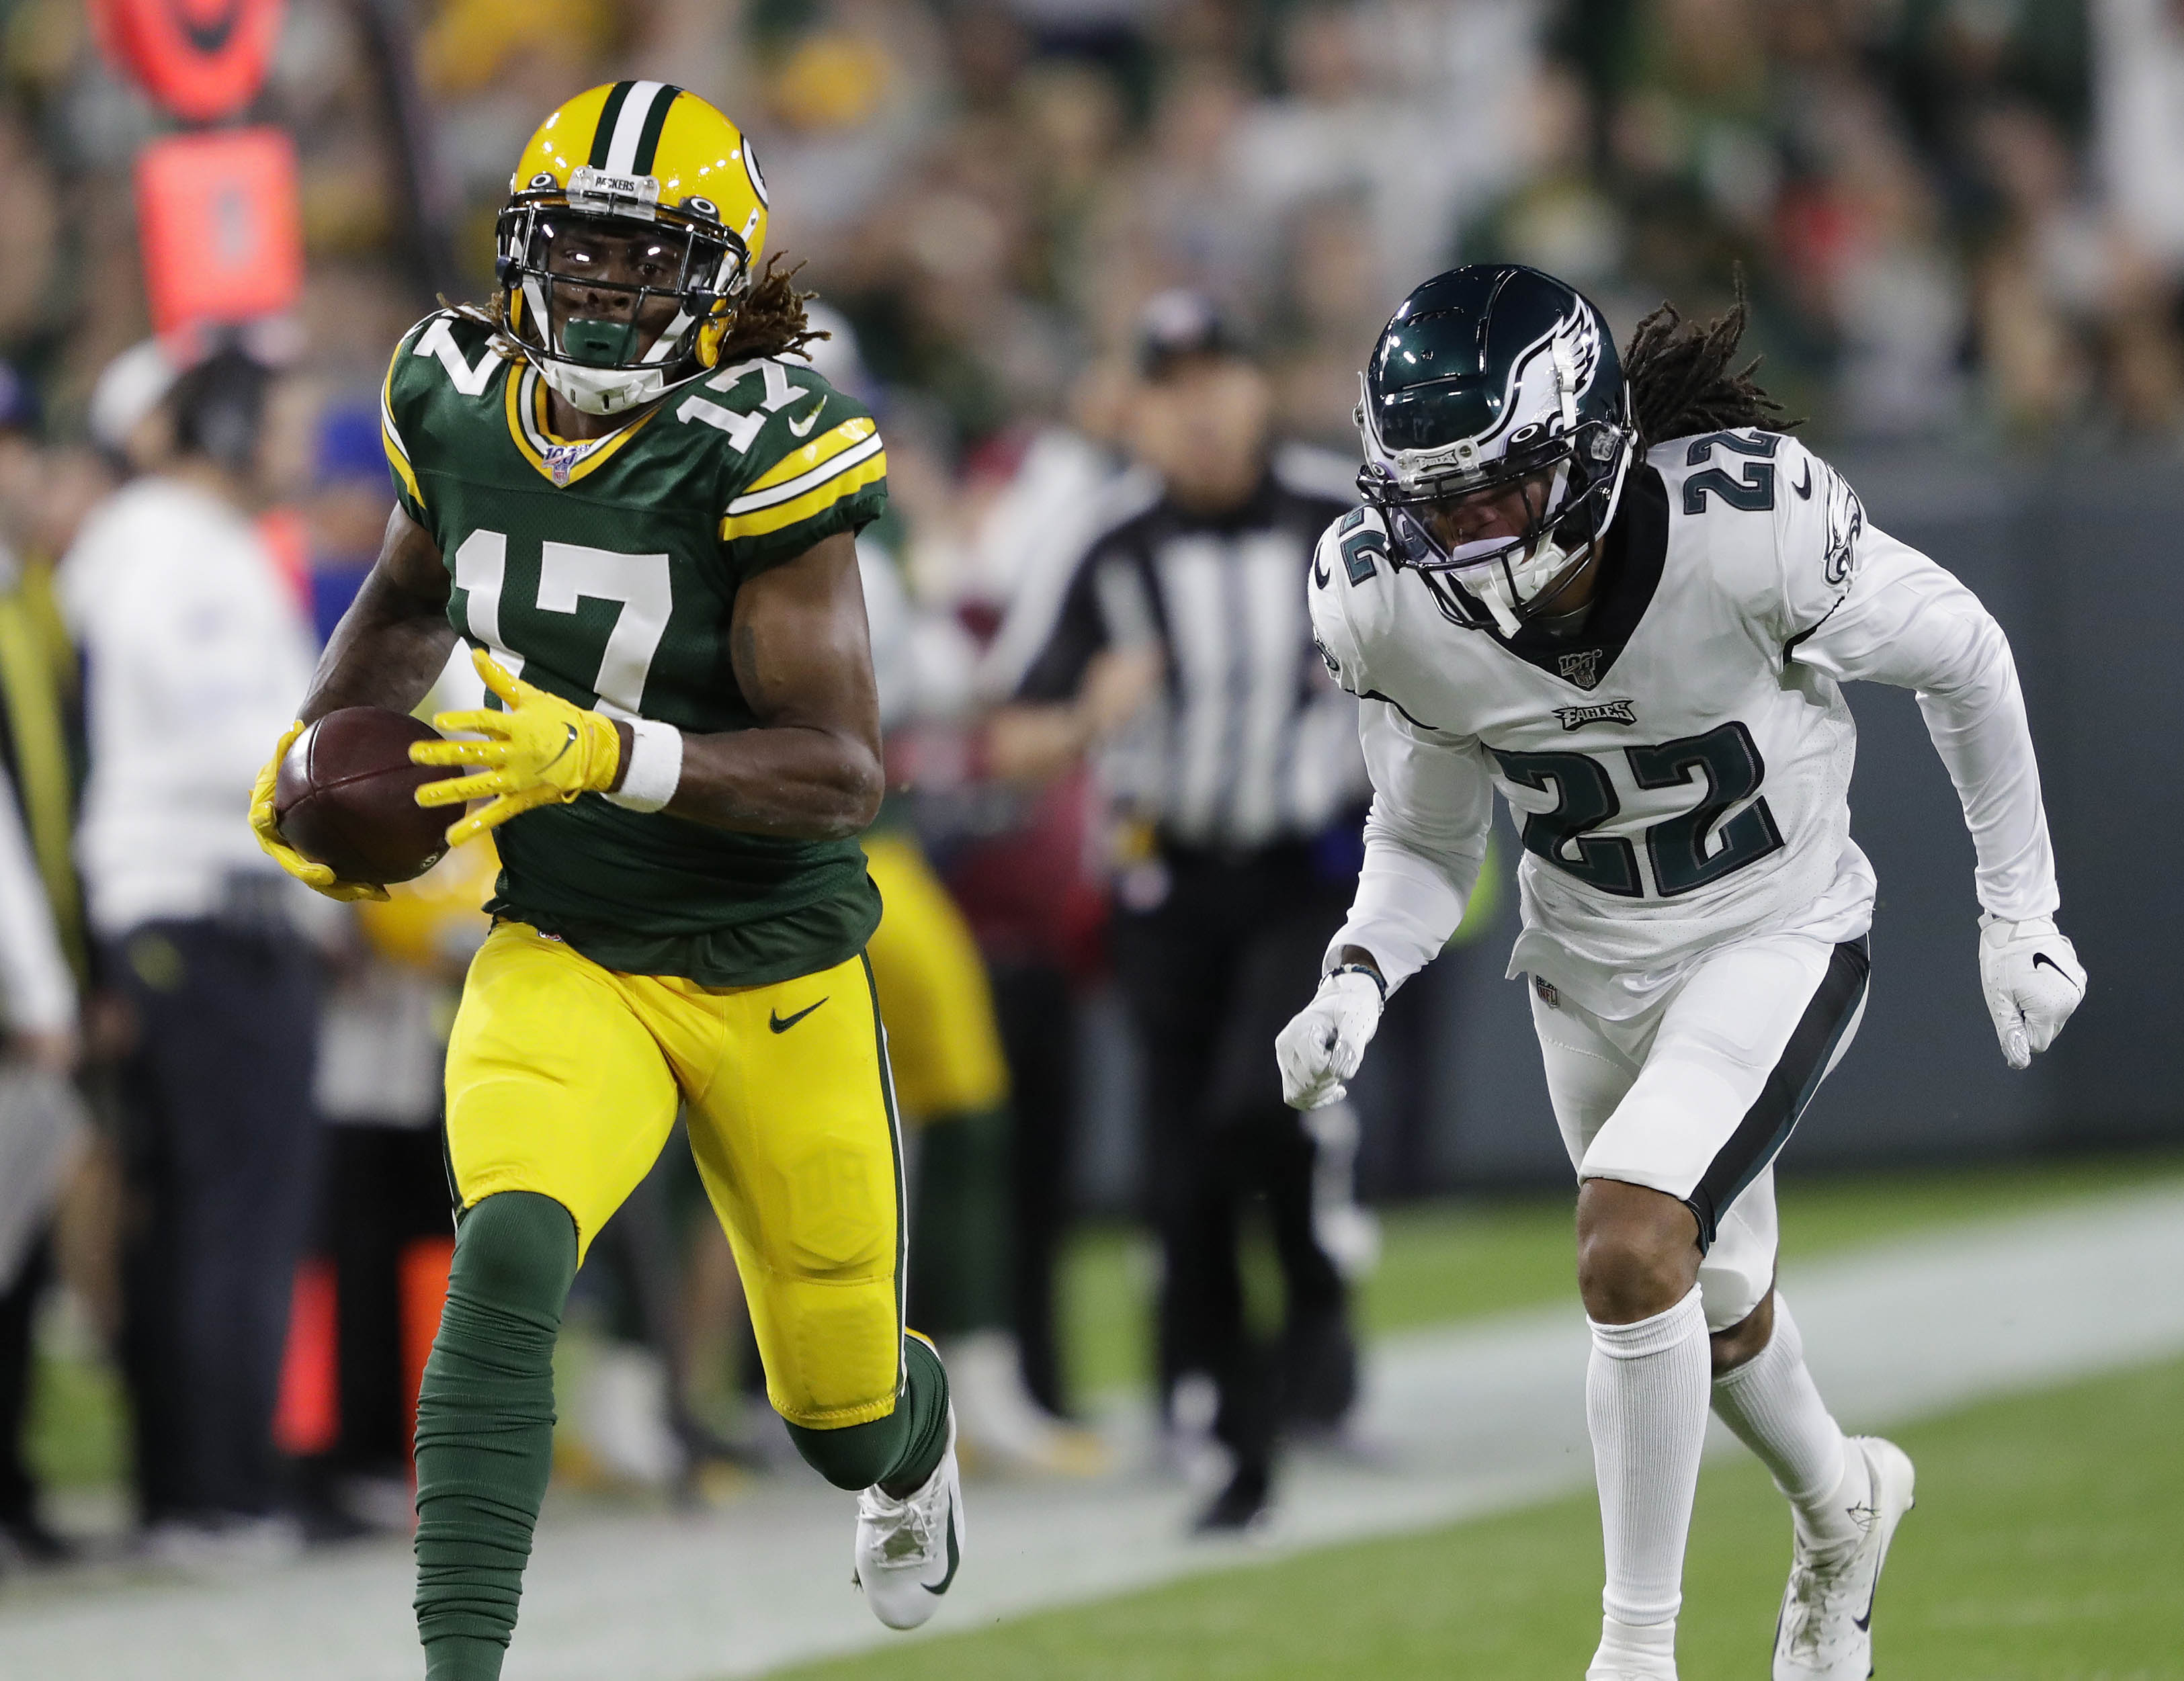 Six Key Factors That Will Determine the Winner of Packers-Eagles